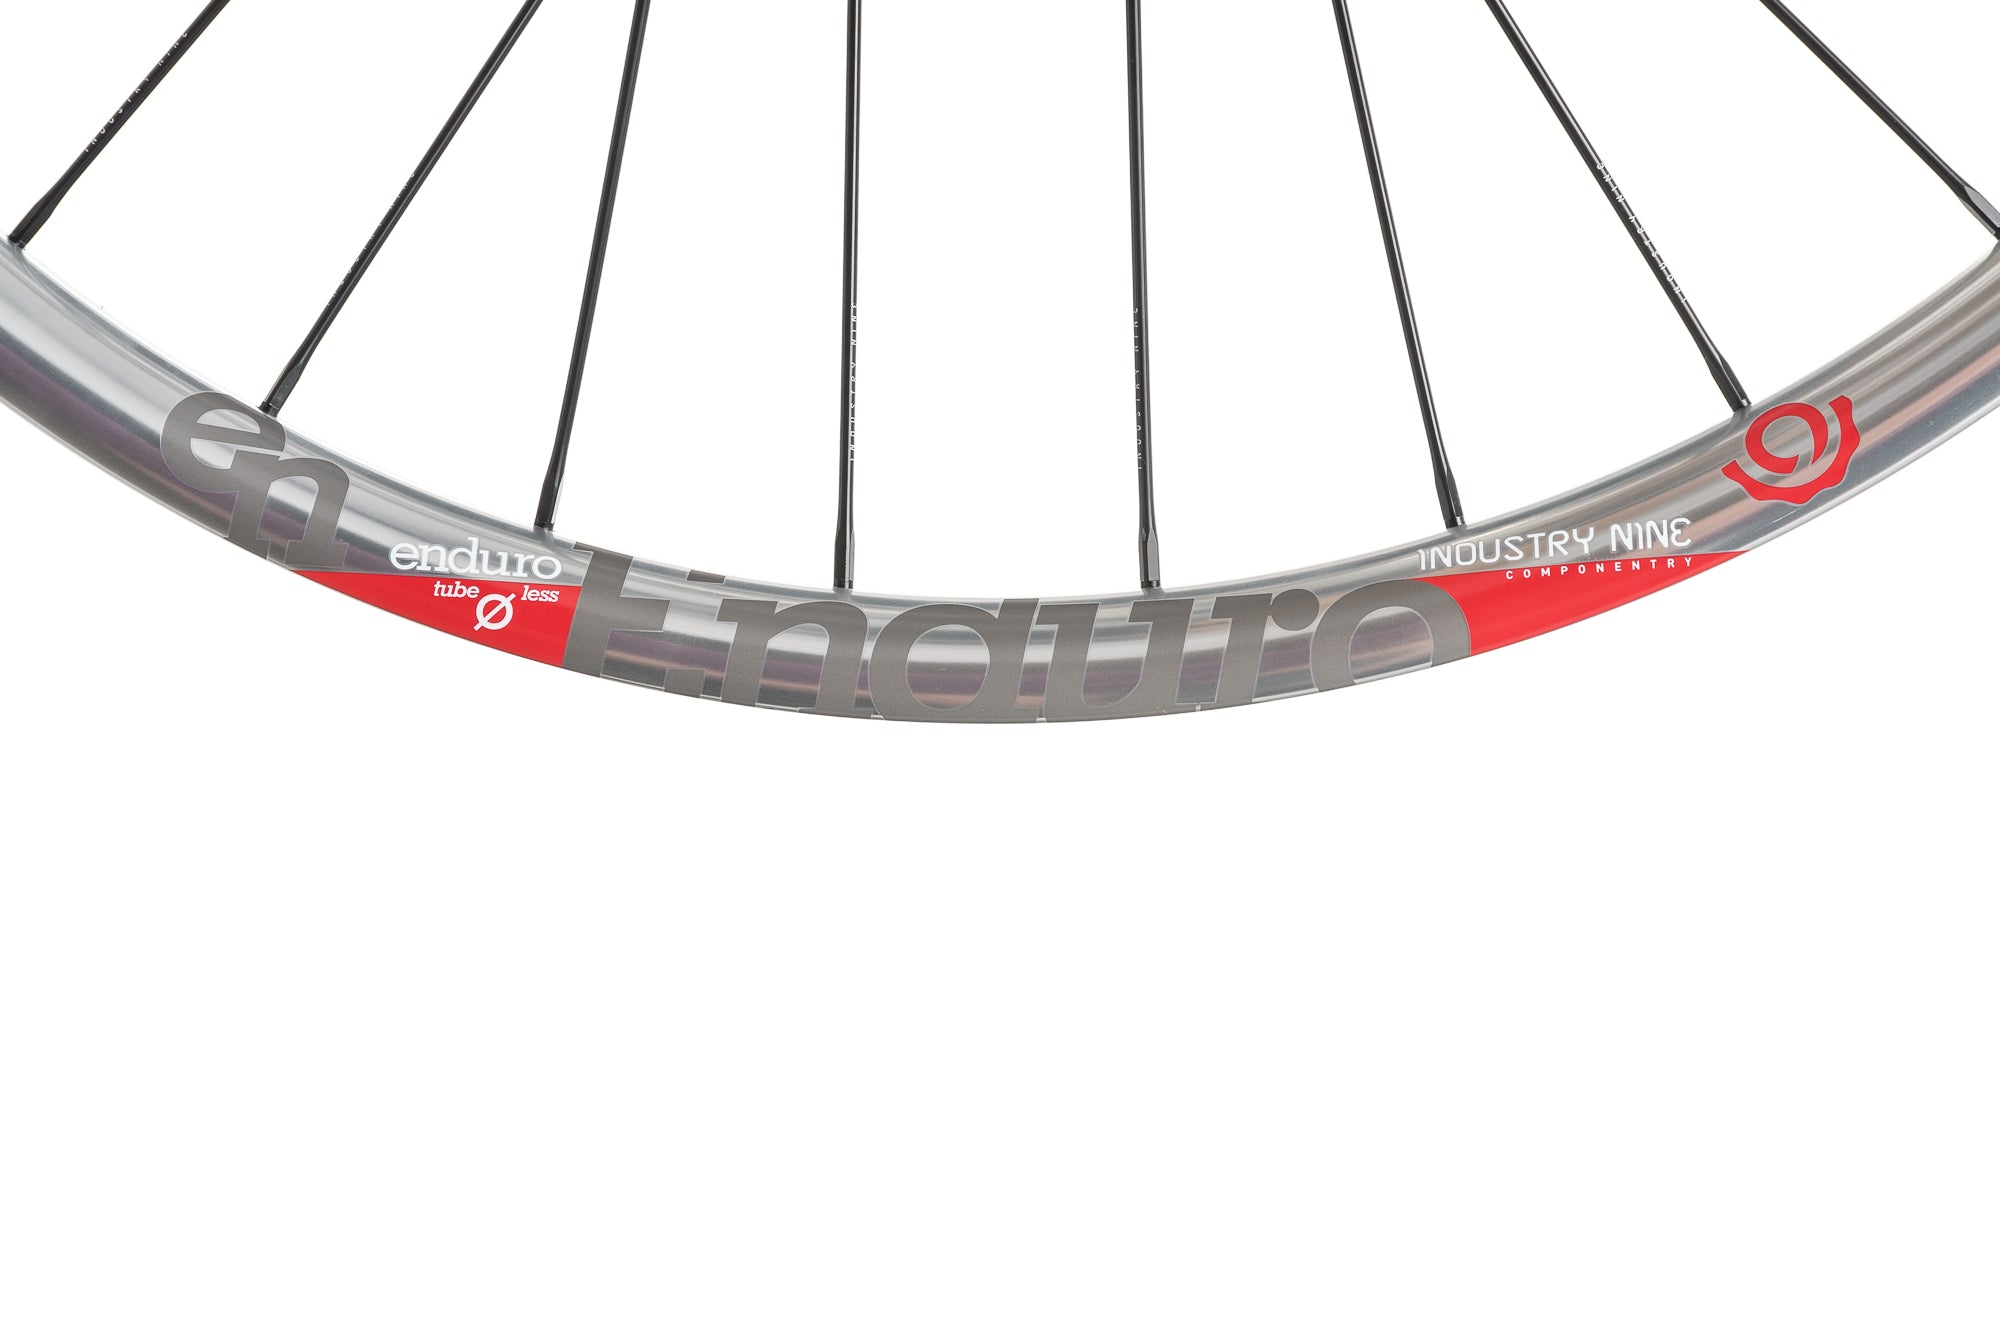 "Industry Nine Enduro Aluminum Tubeless 27.5"" Wheelset"